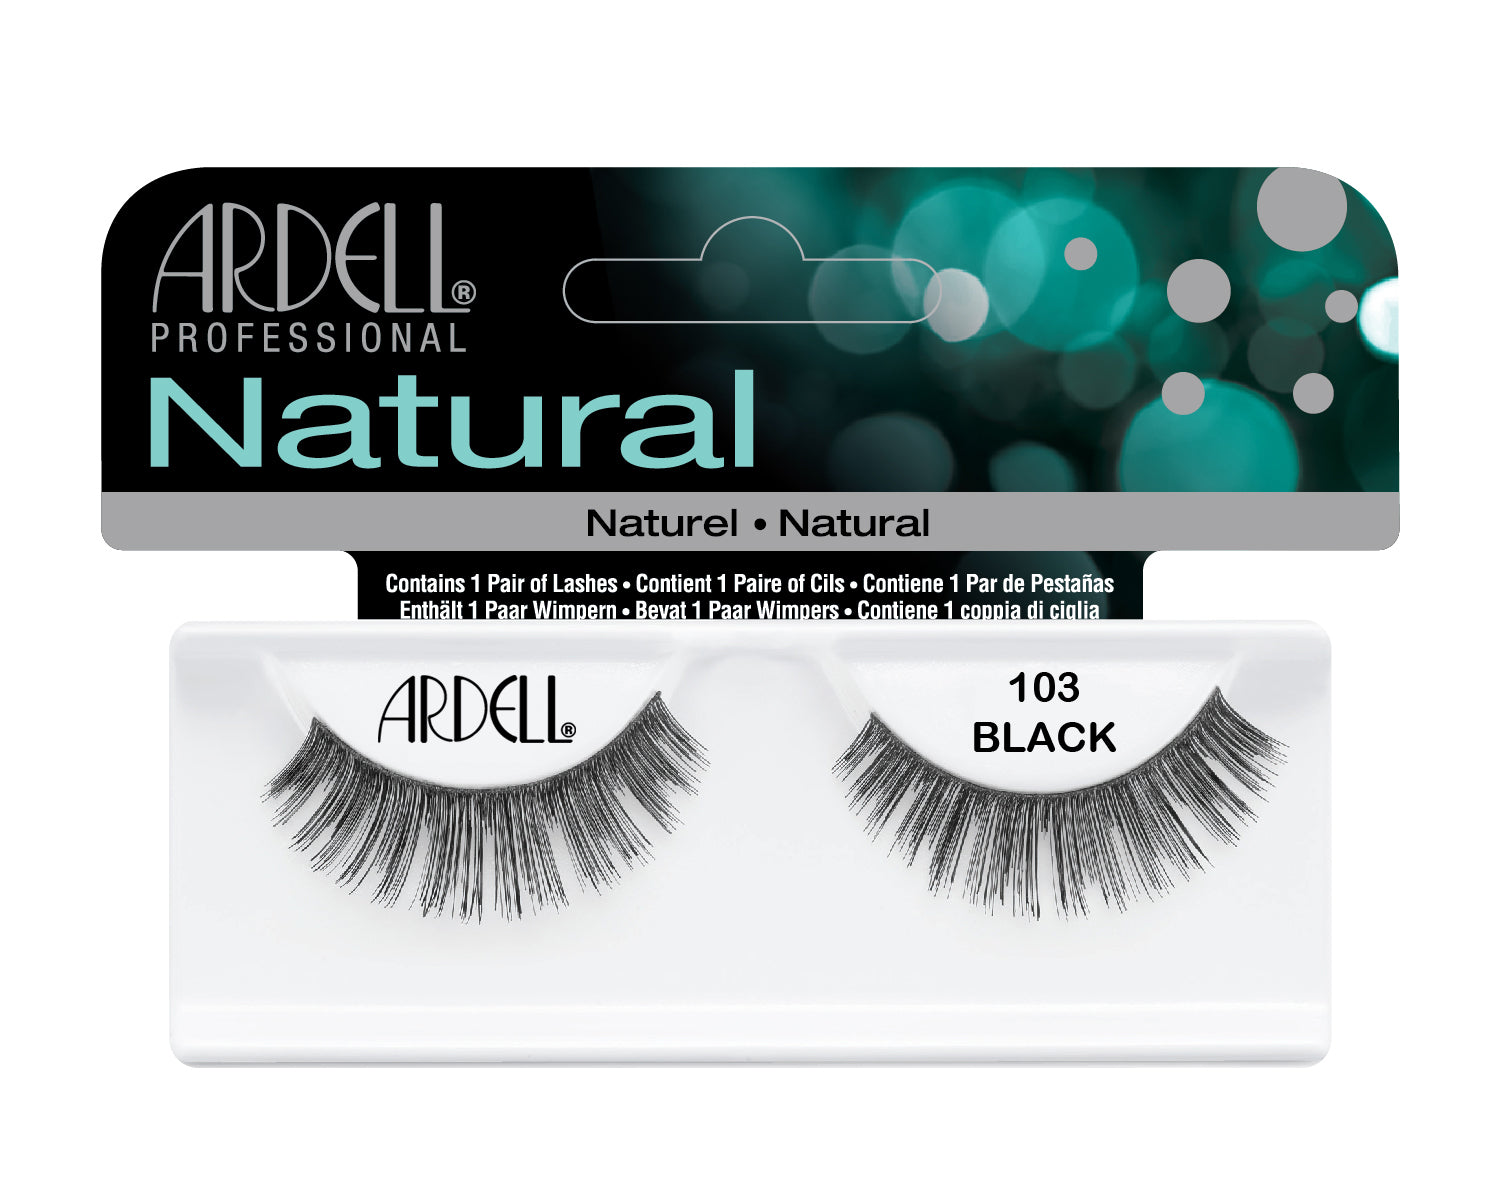 Ardell Natural 103 Black Lashes